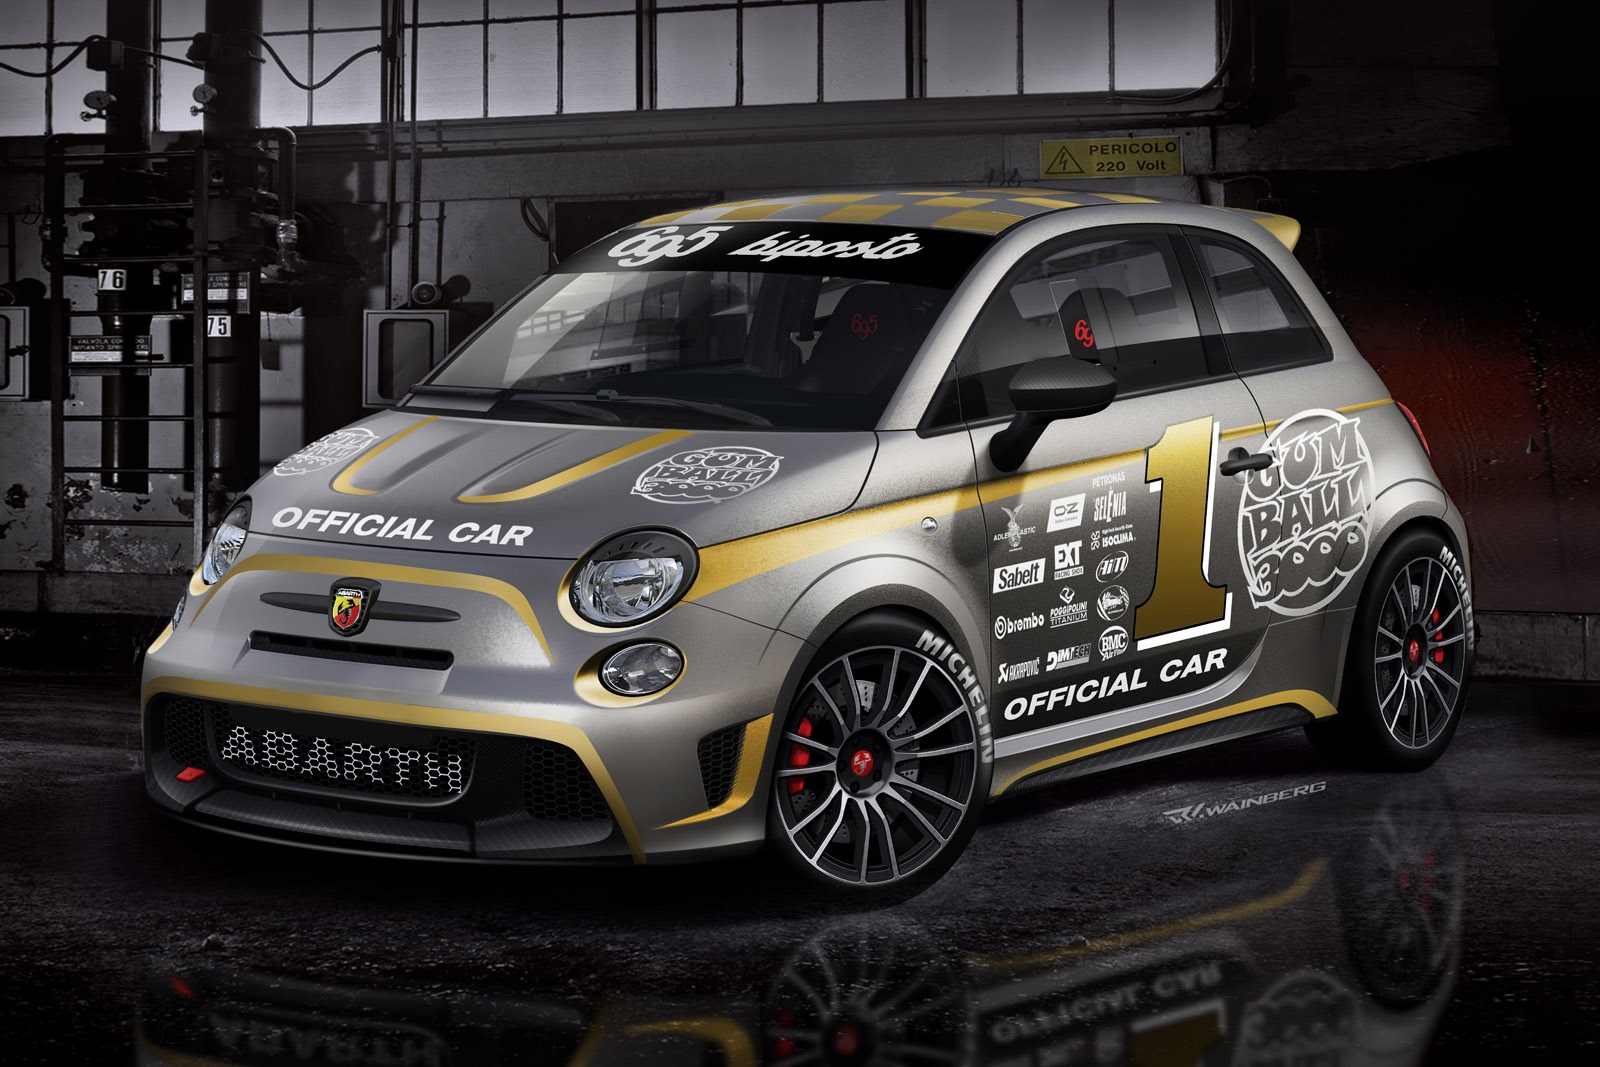 [Fiat] 500 Abarth - Page 13 Abarth-695-Biposto-Gumball-official-car-4%25255B4%25255D